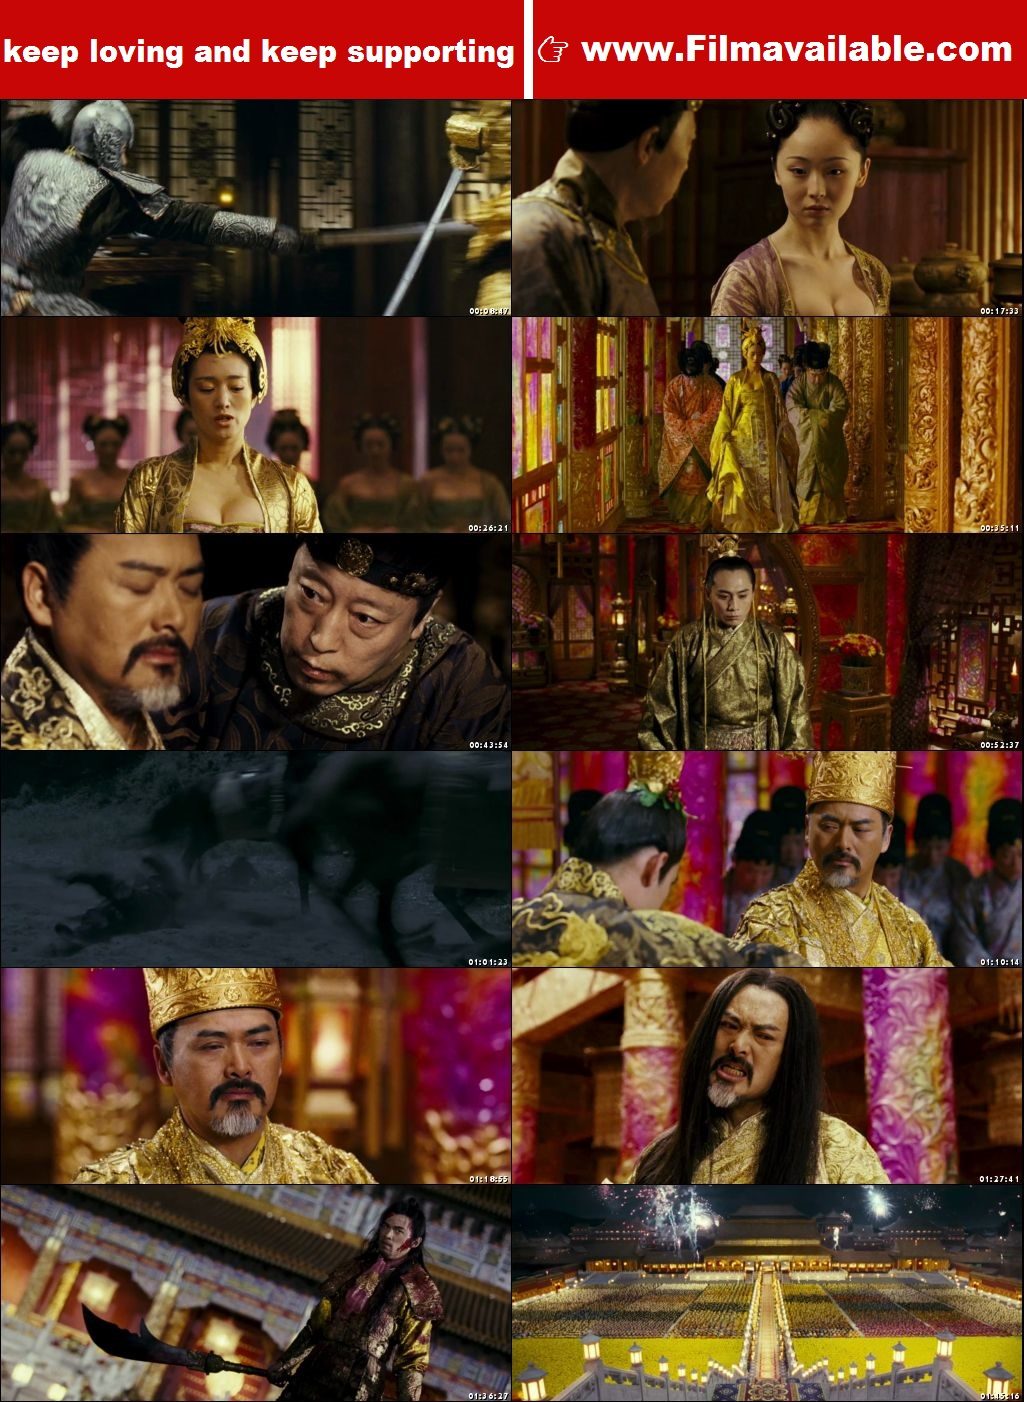 Curse of the Golden Flower 2006 latest movies free download, Curse of the Golden Flower 2006 hd movies download, Curse of the Golden Flower 2006 new movie download,Curse of the Golden Flower 2006 download free movies online, Curse of the Golden Flower 2006 hd movies free download